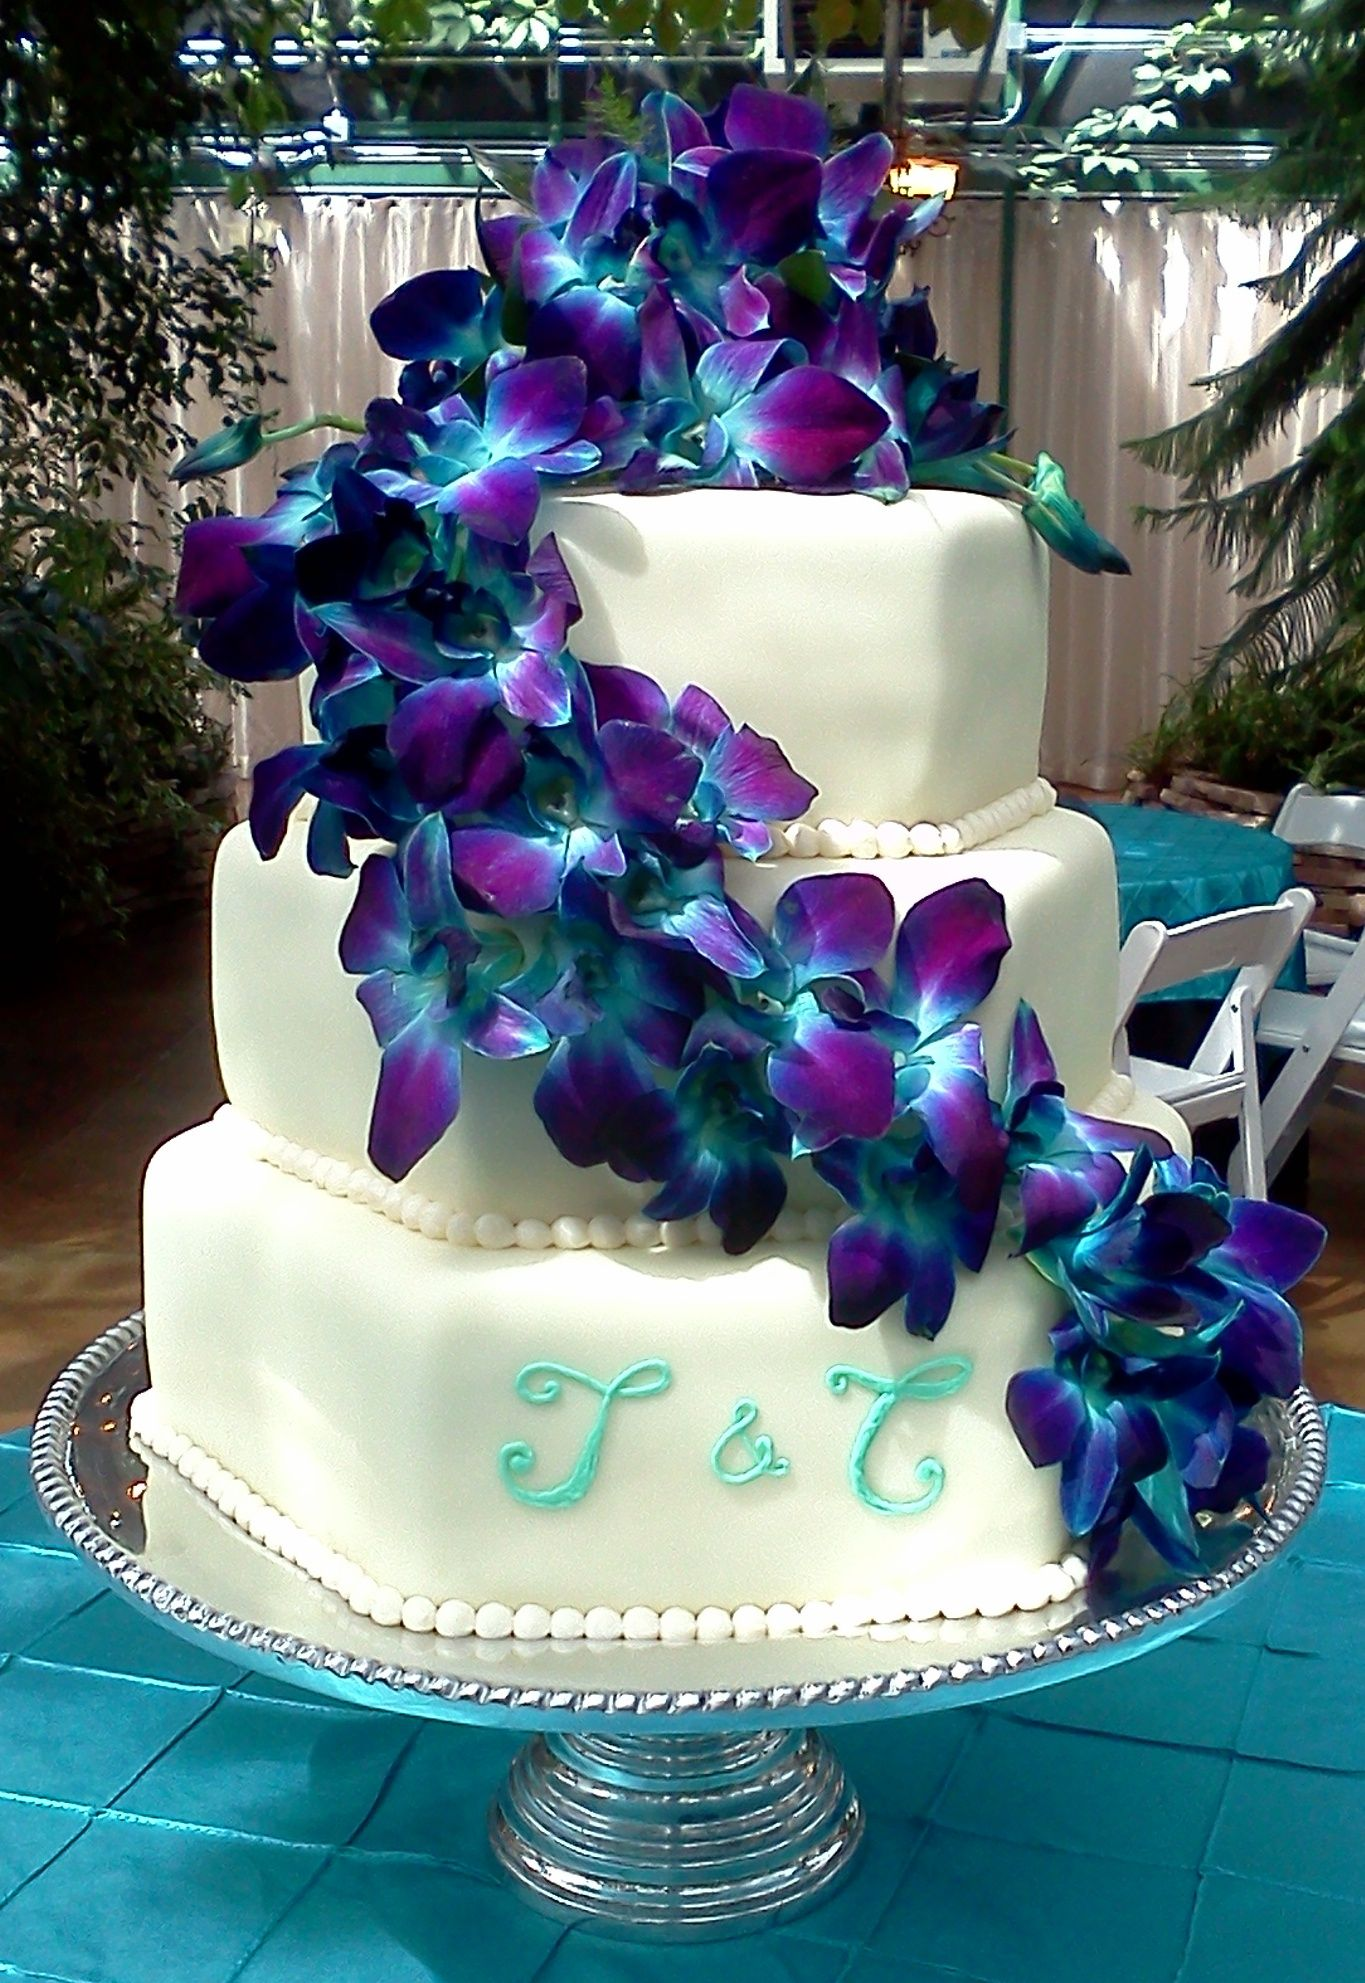 Three tiered wedding cake with blue orchids trailing down